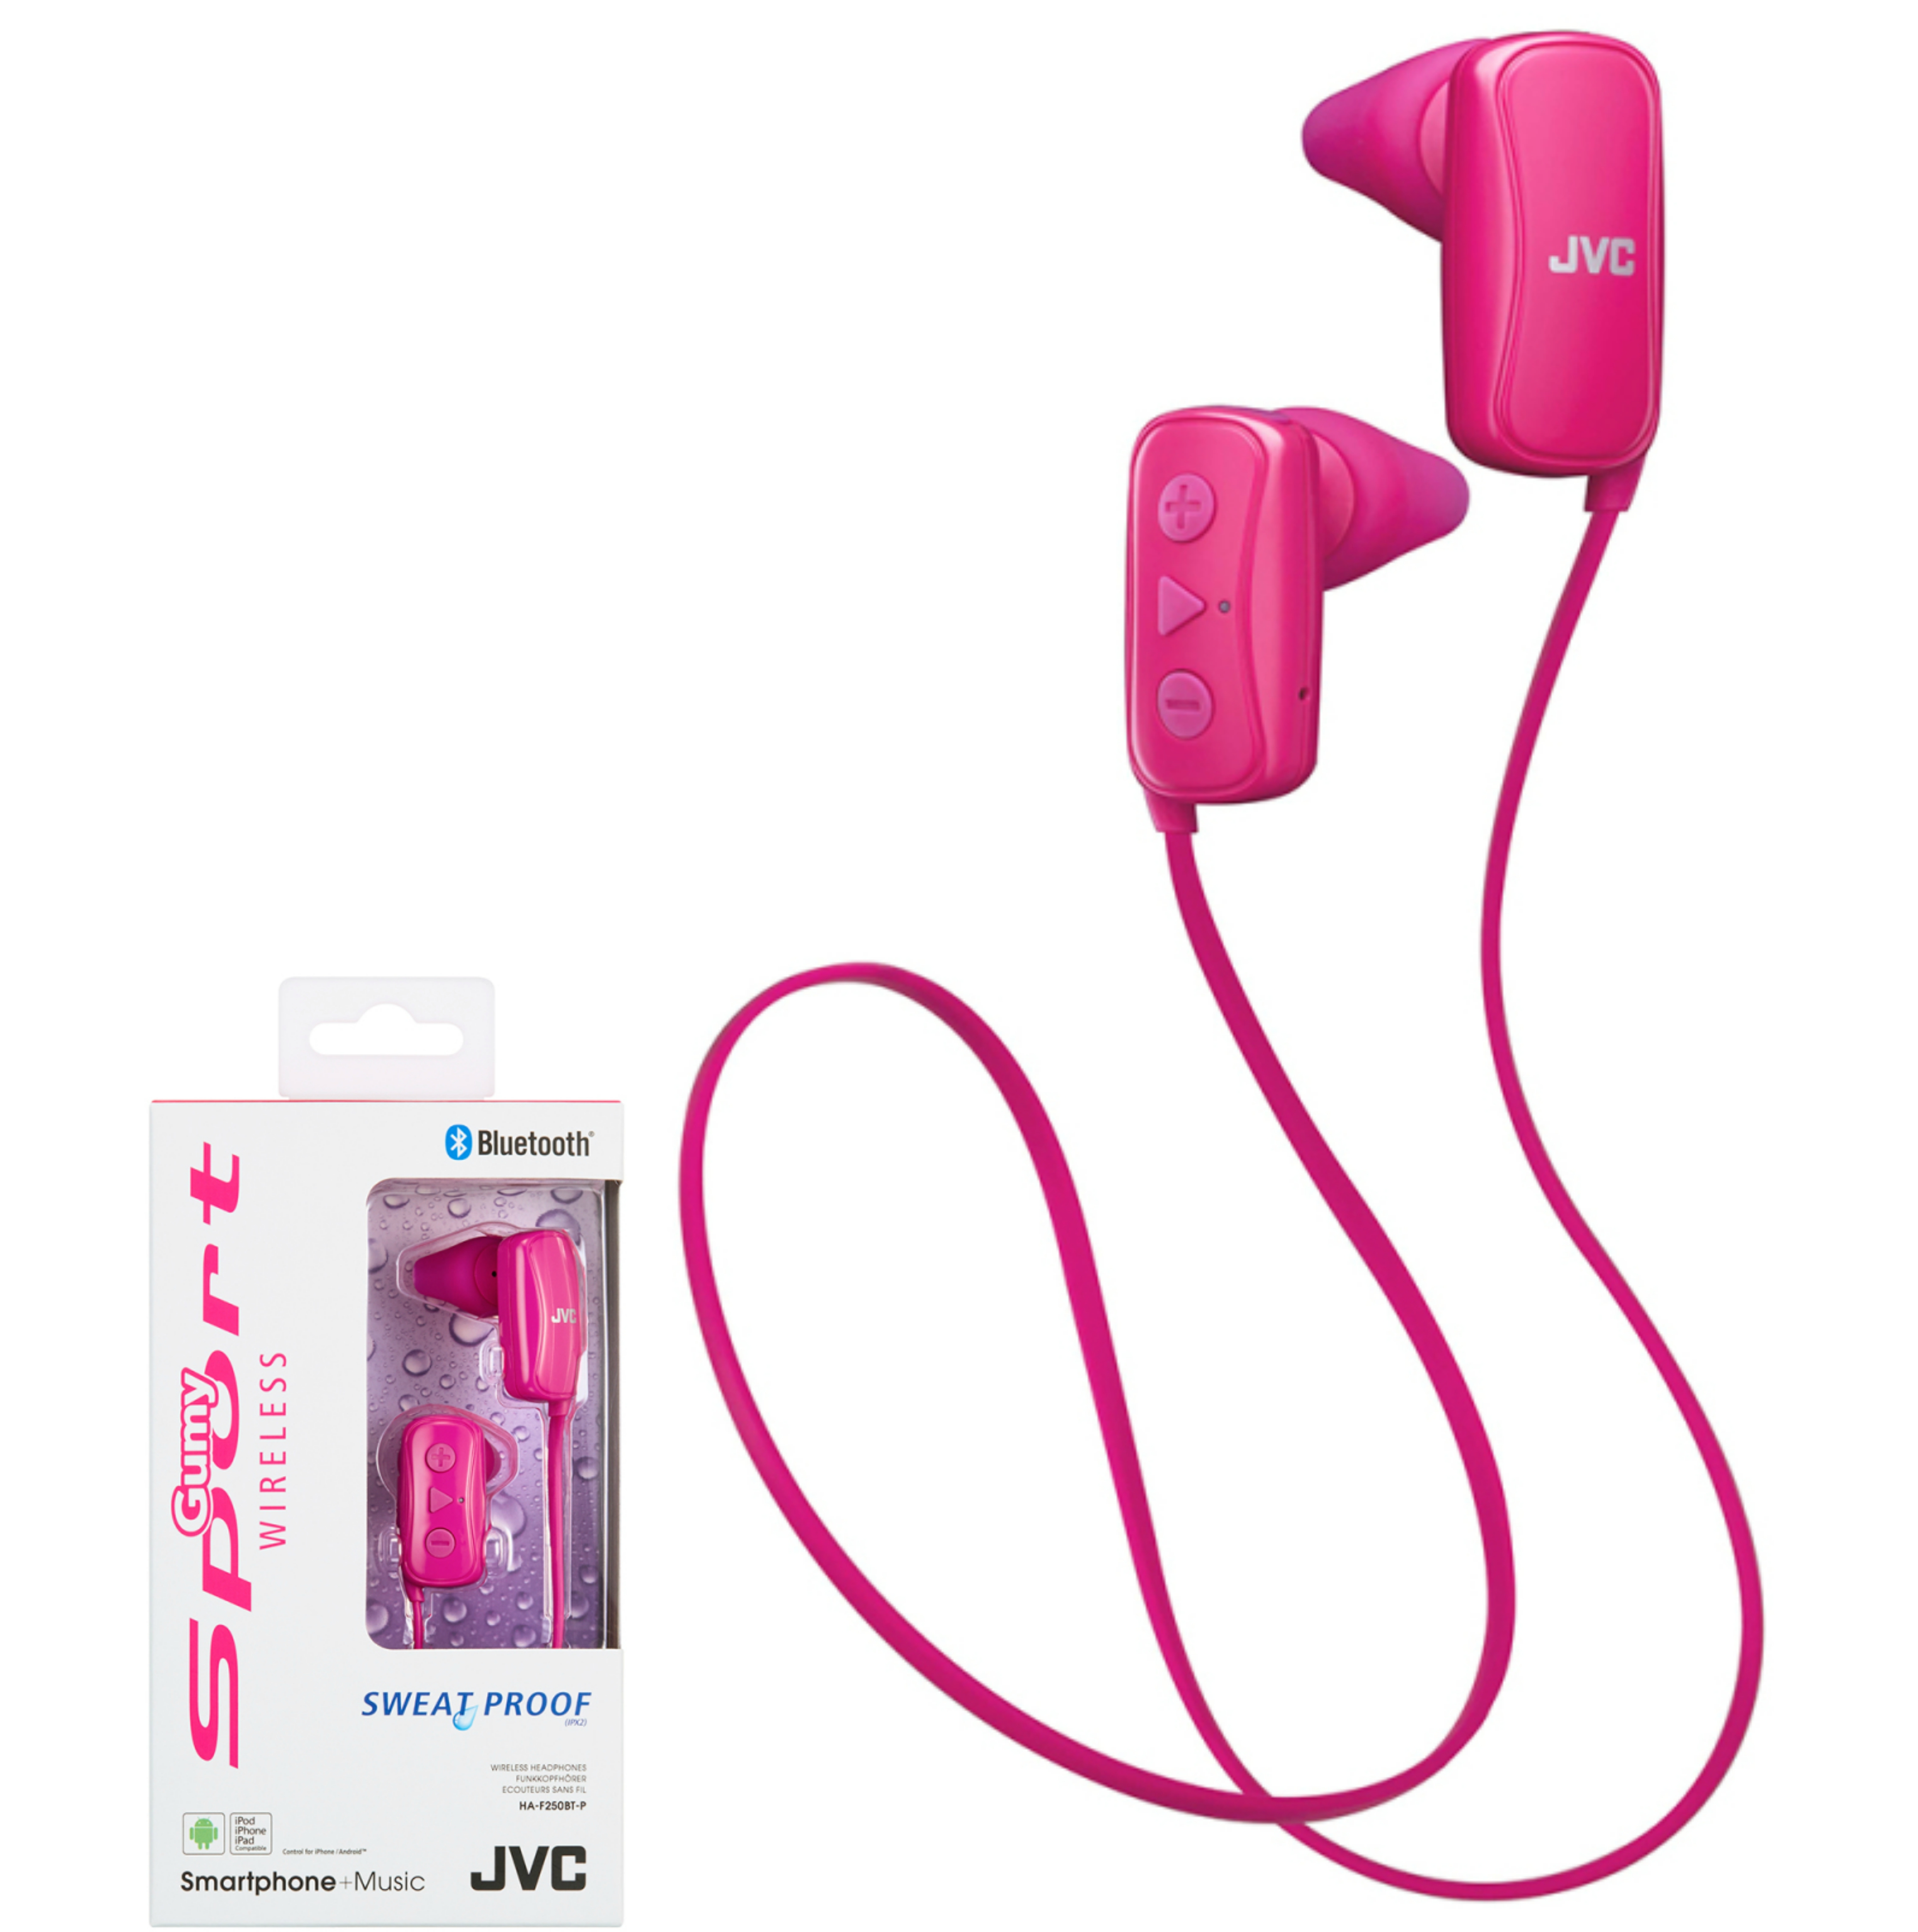 JVC HAF250BTPE Gumy Sports Bluetooth Headphones|9.0mm |In Ear|Android/Ios|Pink|